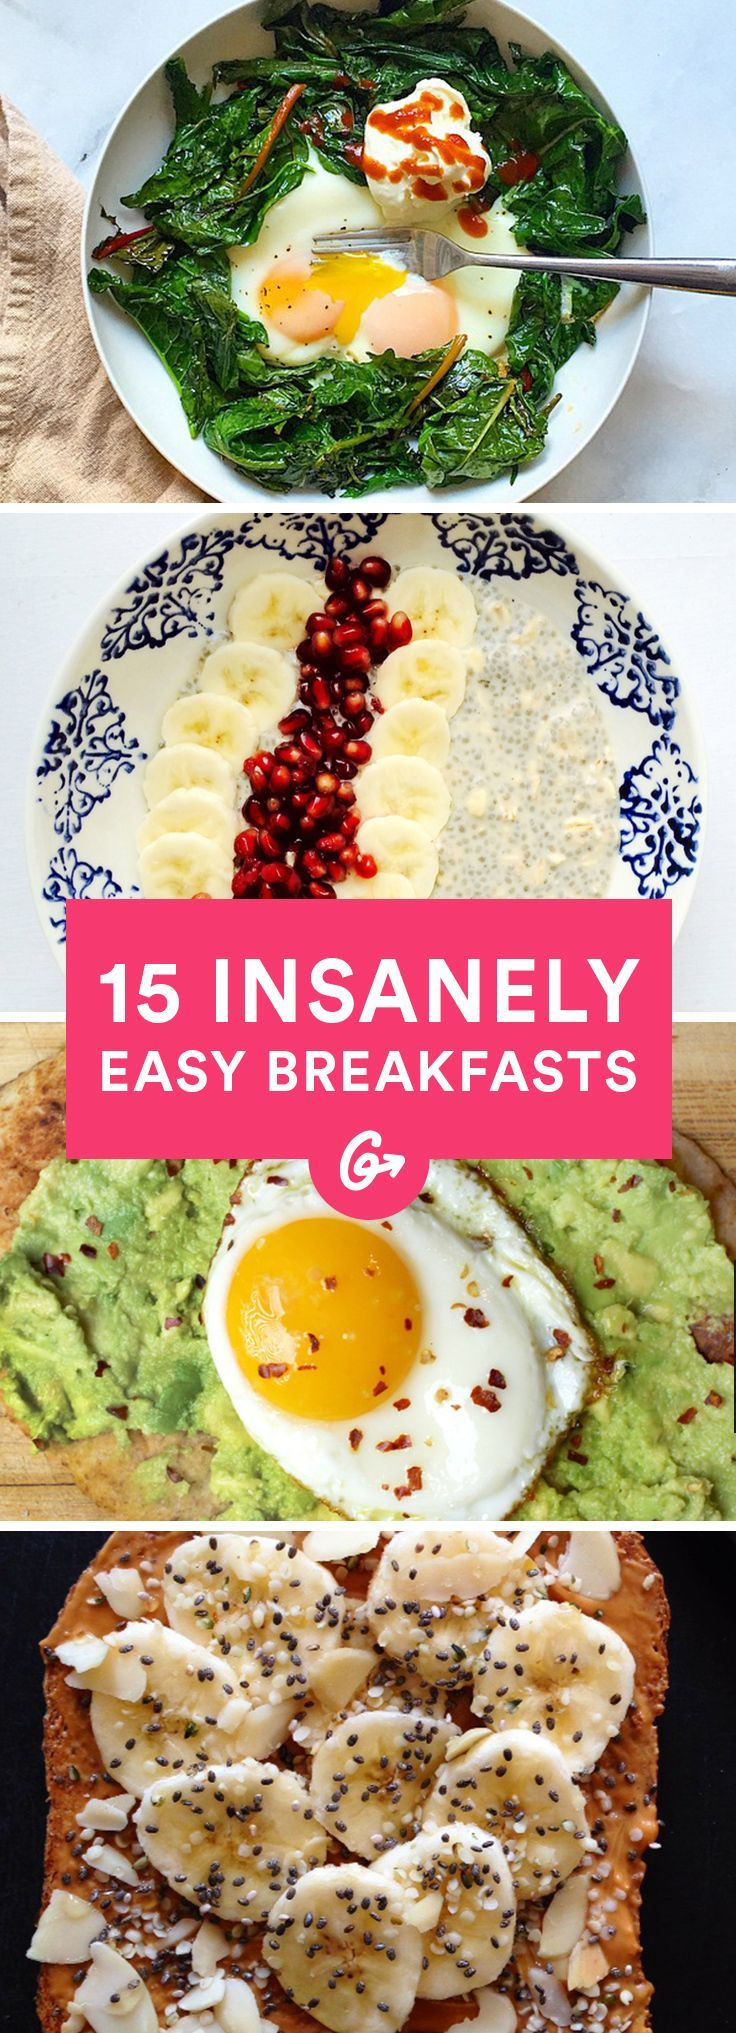 Your new go-to breakfasts #breakfast #easy #quick http://greatist.com/eat/insanely-easy-blogger-breakfasts